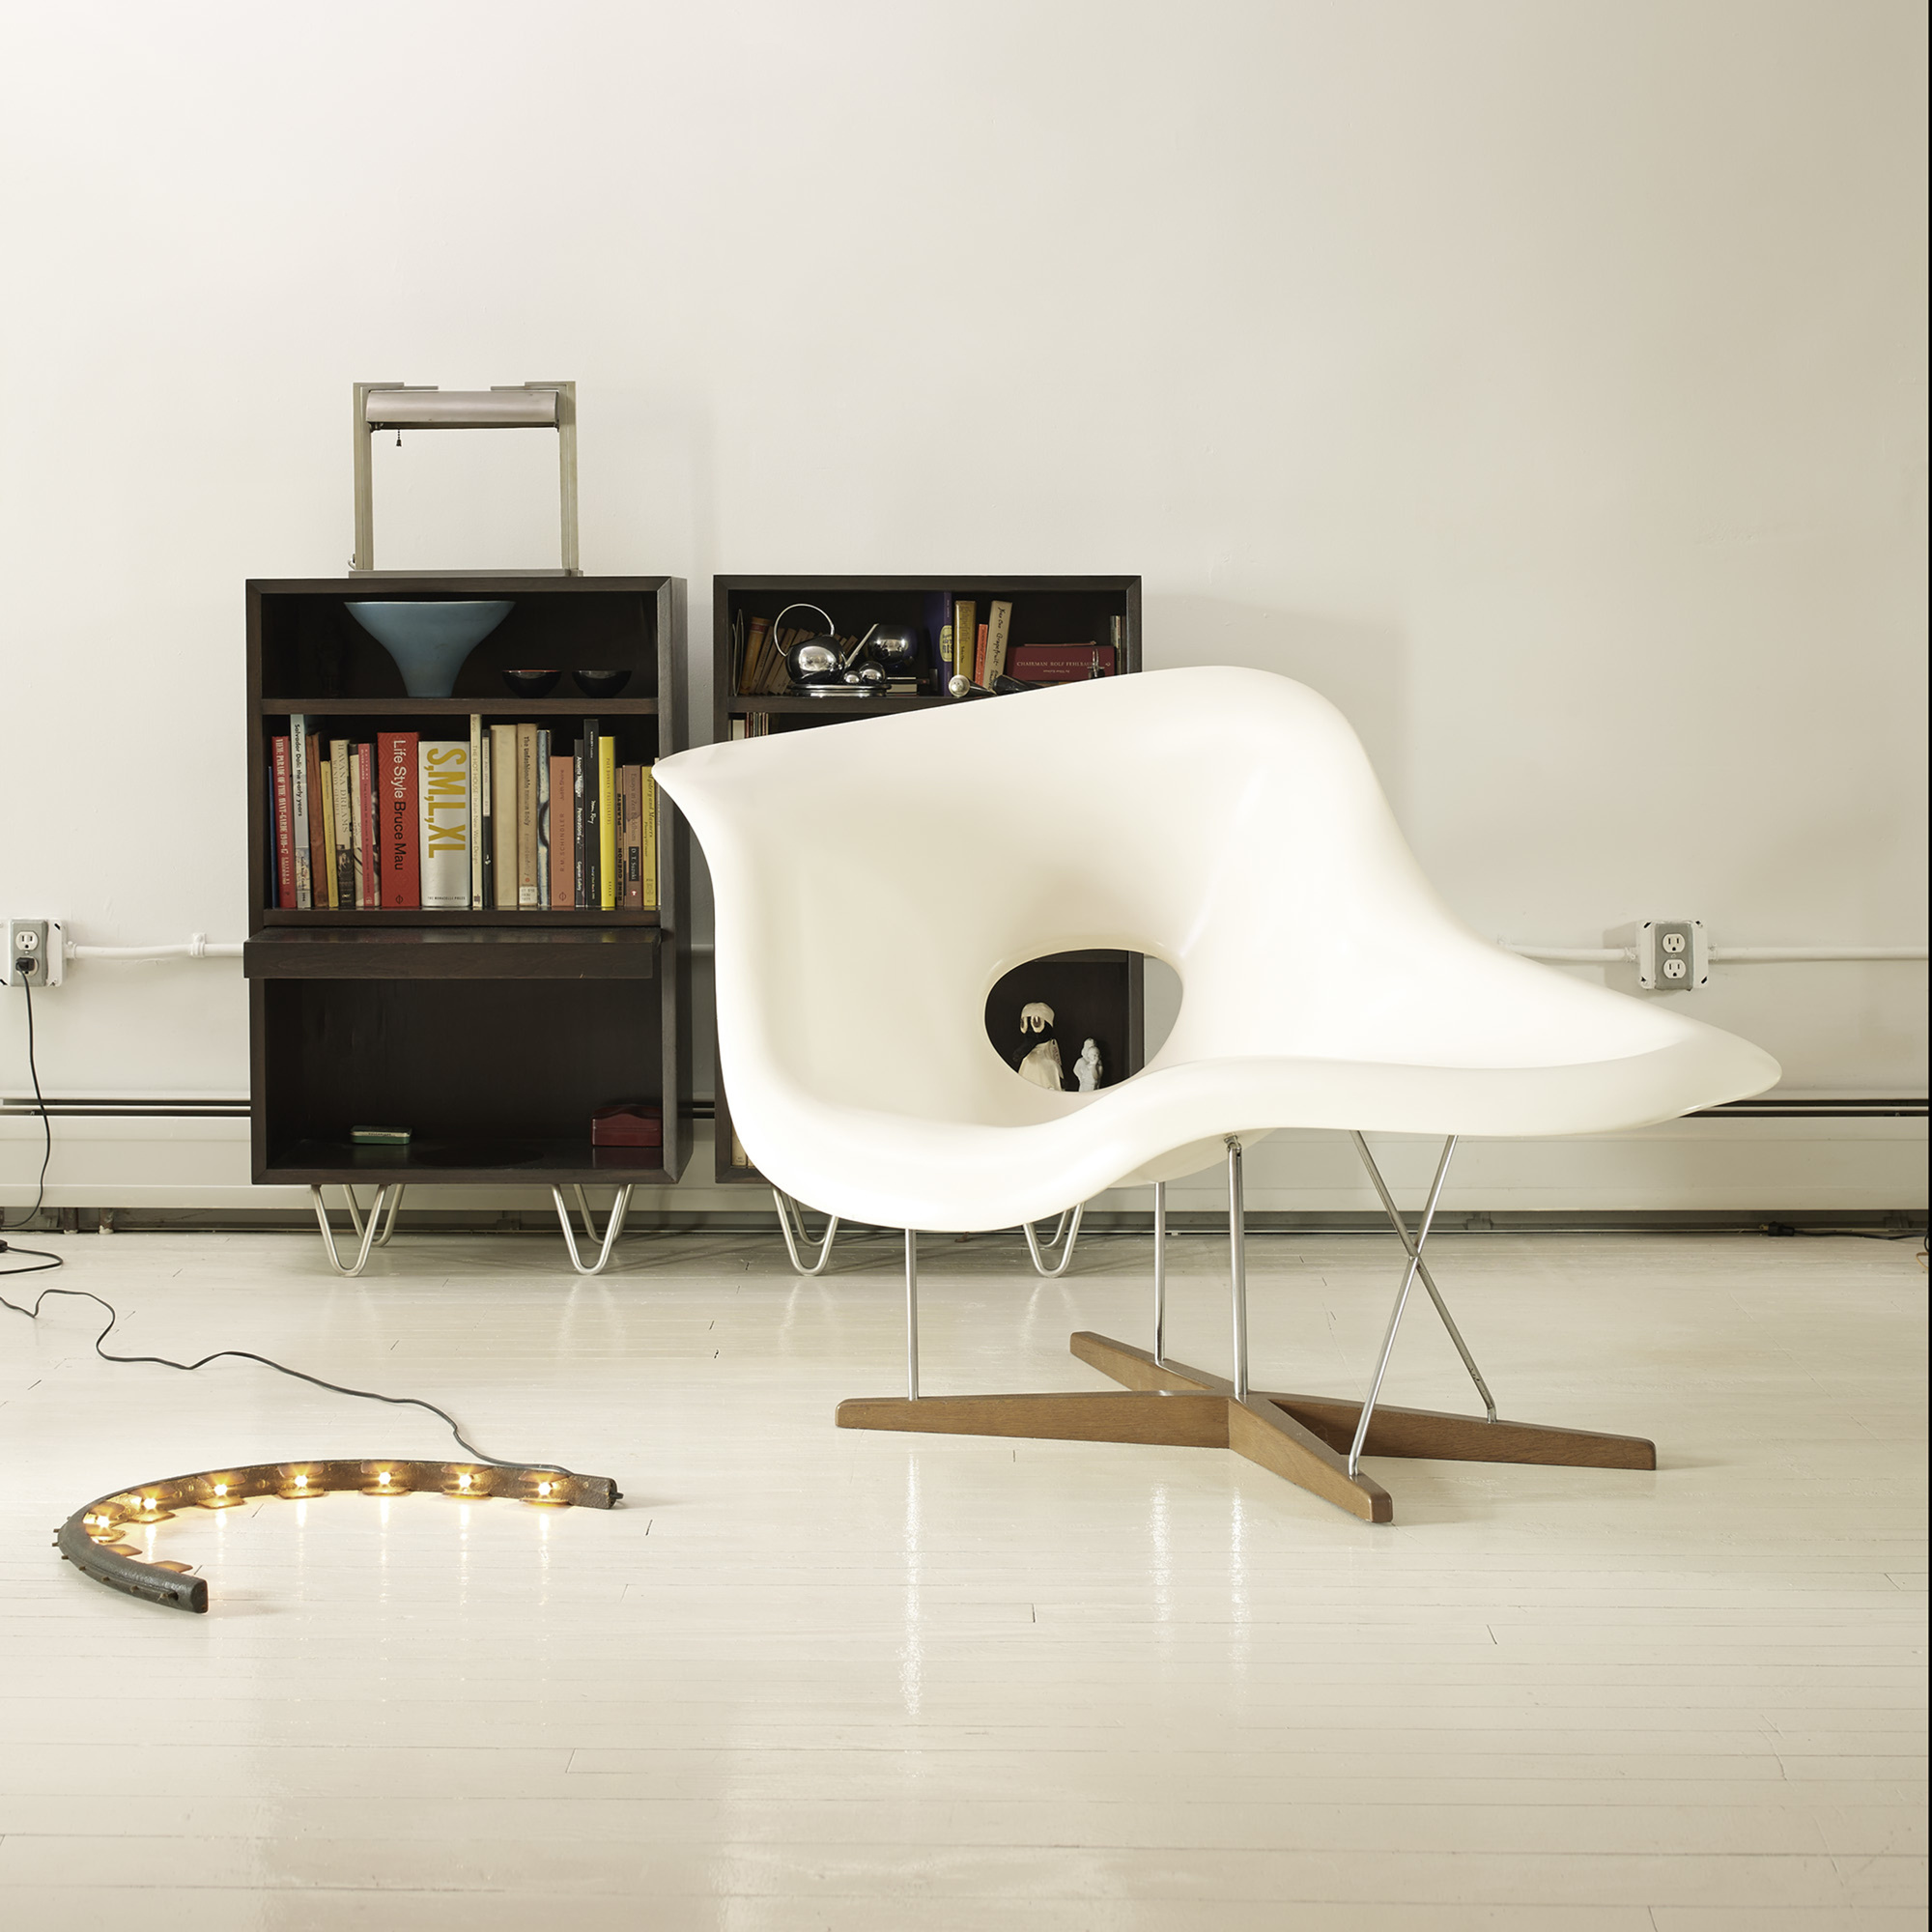 171 charles and ray eames la chaise. Black Bedroom Furniture Sets. Home Design Ideas